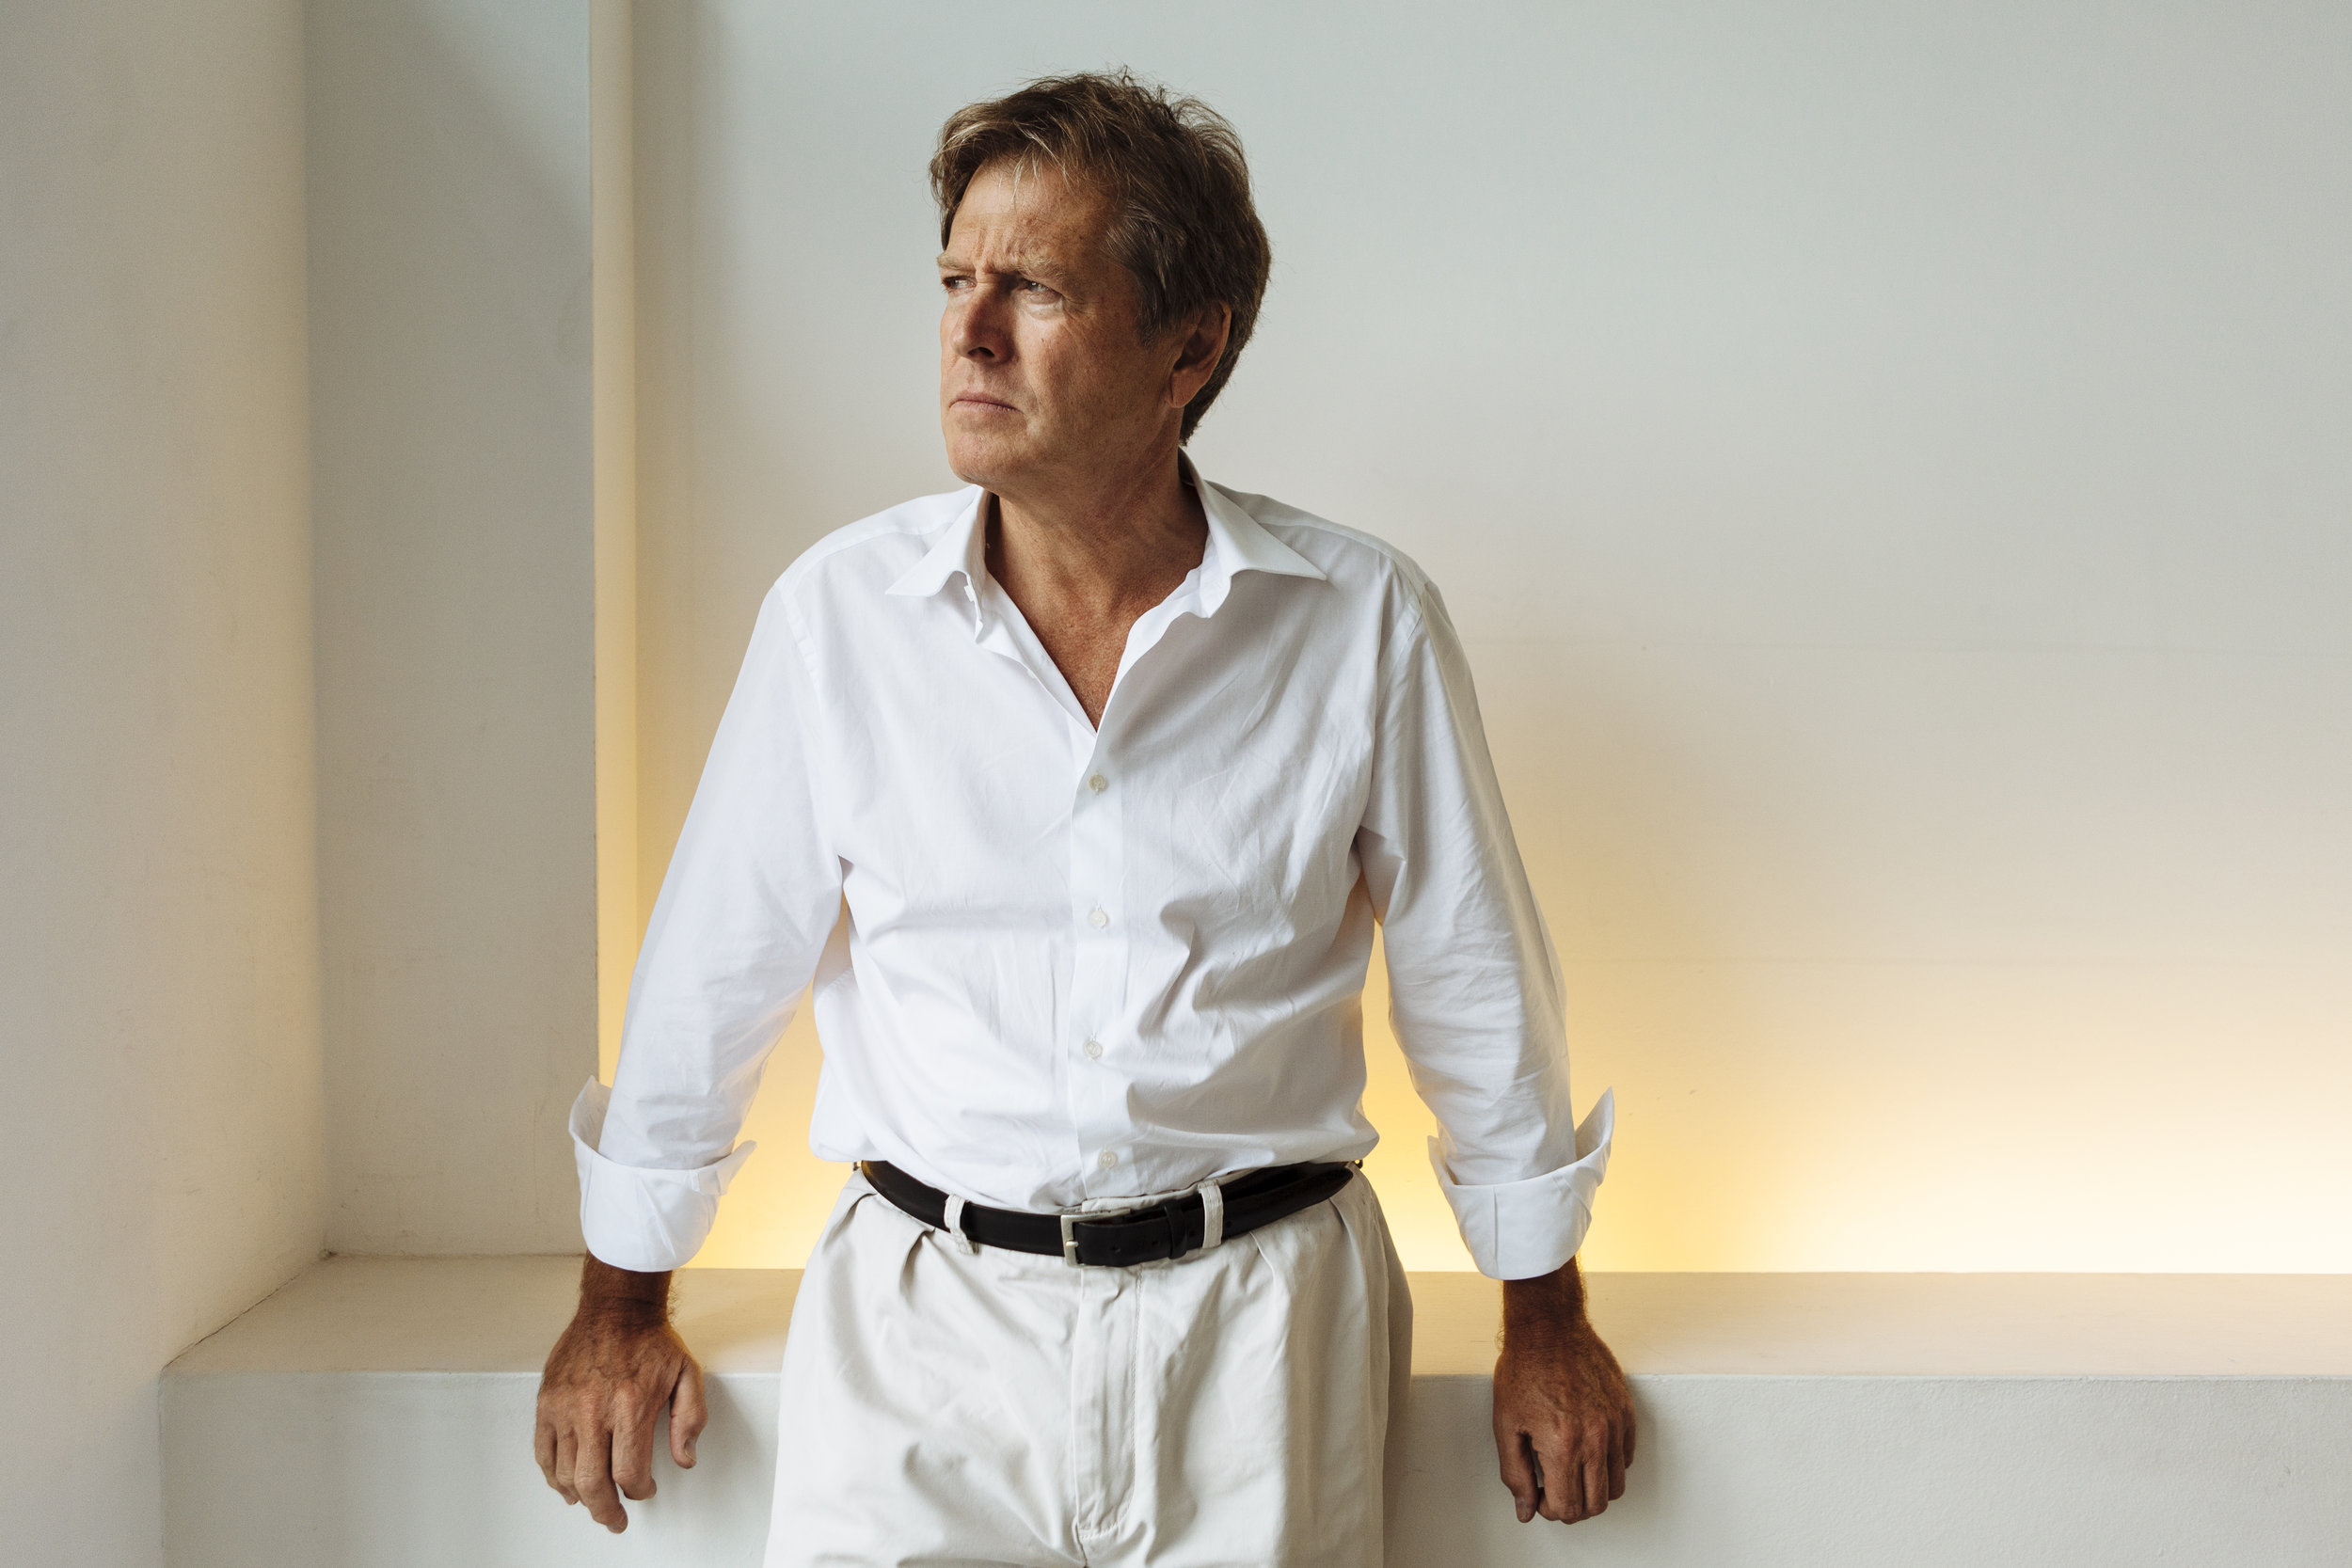 British architect and designer John Pawson poses for a portrait at his office near King's Cross, central London, Friday, Sept. 3, 2010. (David Azia for The New York Times)